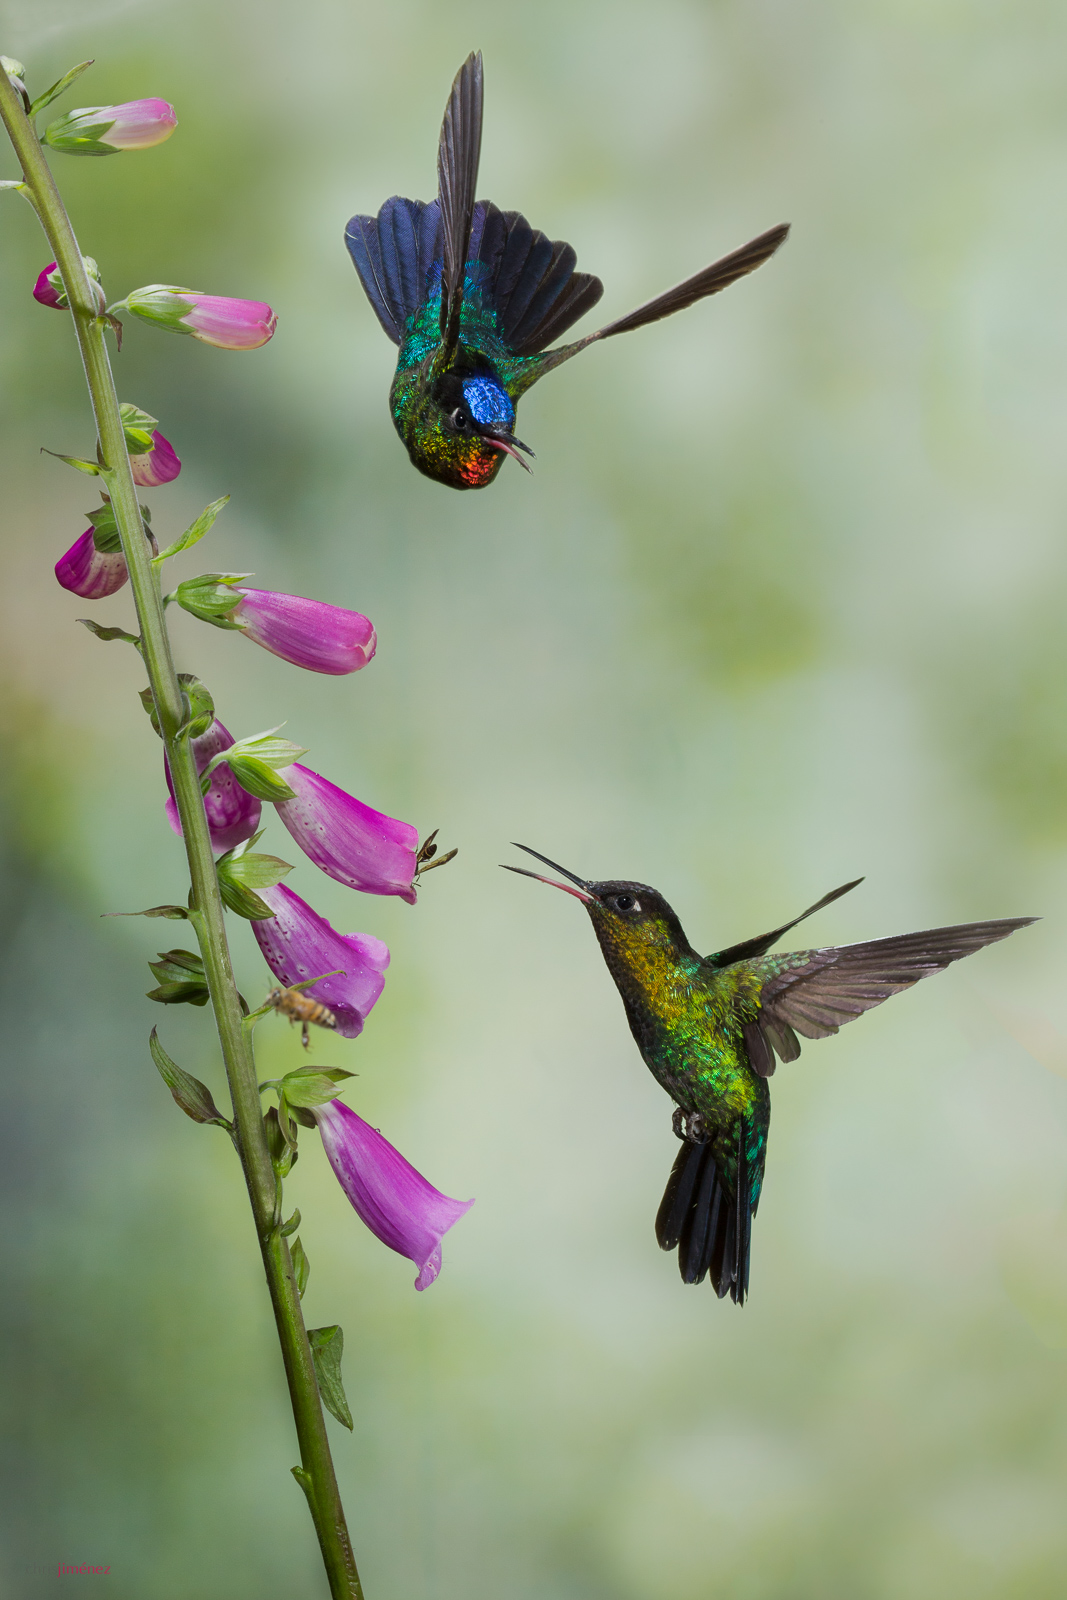 Fiery-throated Hummingbird (Panterpe insignis) feeding from flowers at Cerro de la Muerte, Costa Rica.